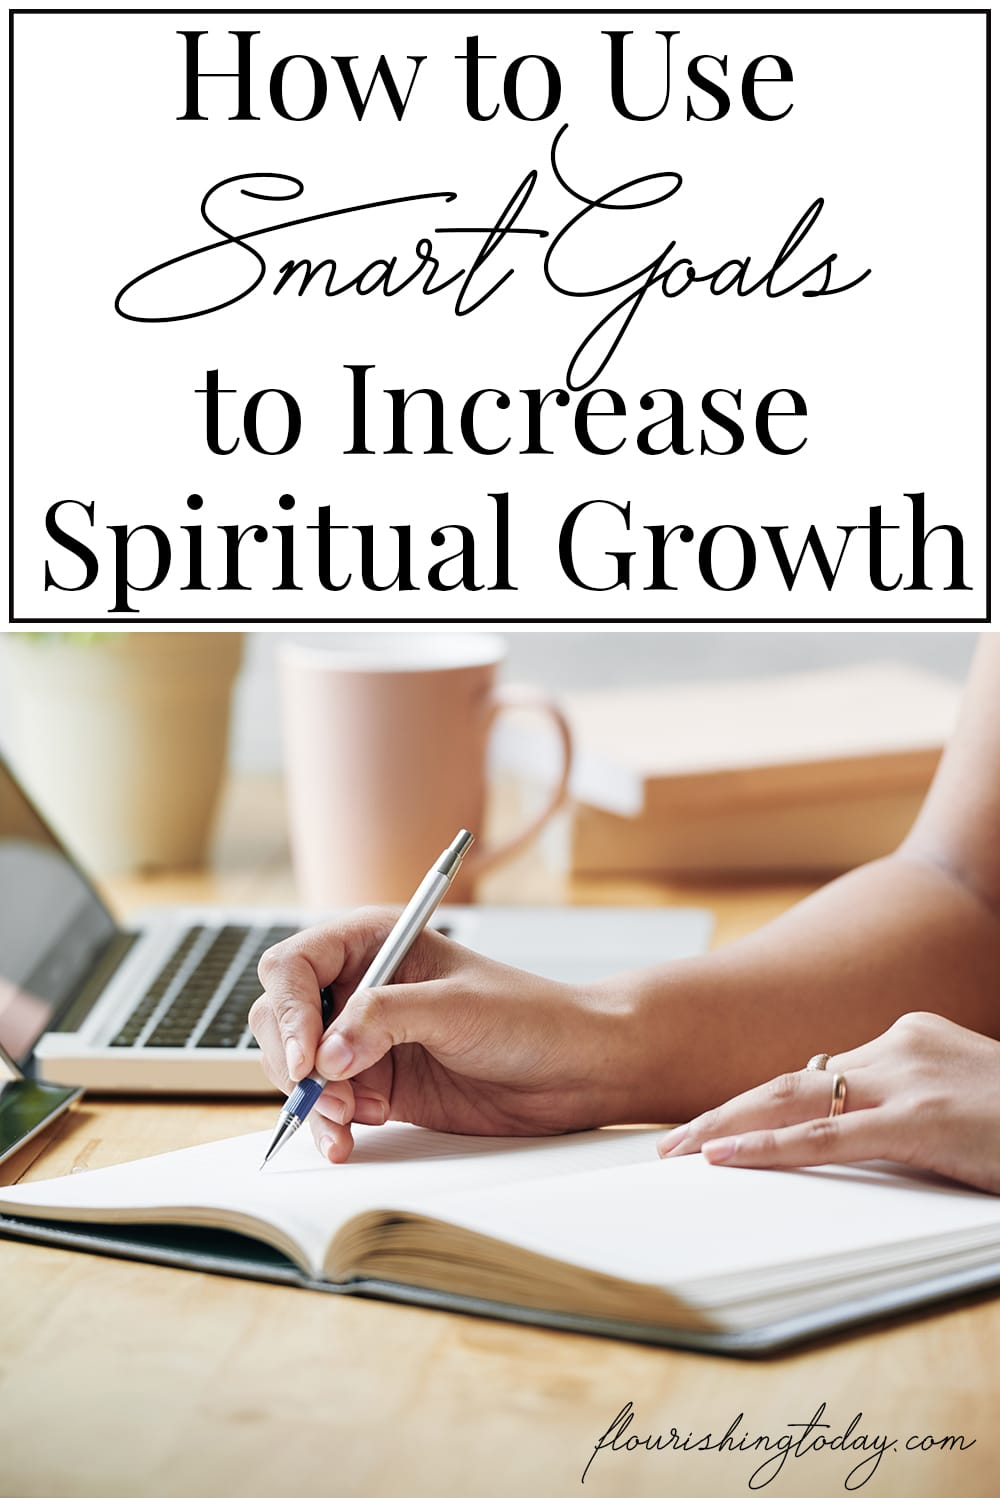 Do you want to grow in your spiritual life? Have you set goals to accomplish what you want? Learn how to use SMART goals to help you grow spiritually. #smartgoals #goalsetting #spiritualgrowth #setyourgoals